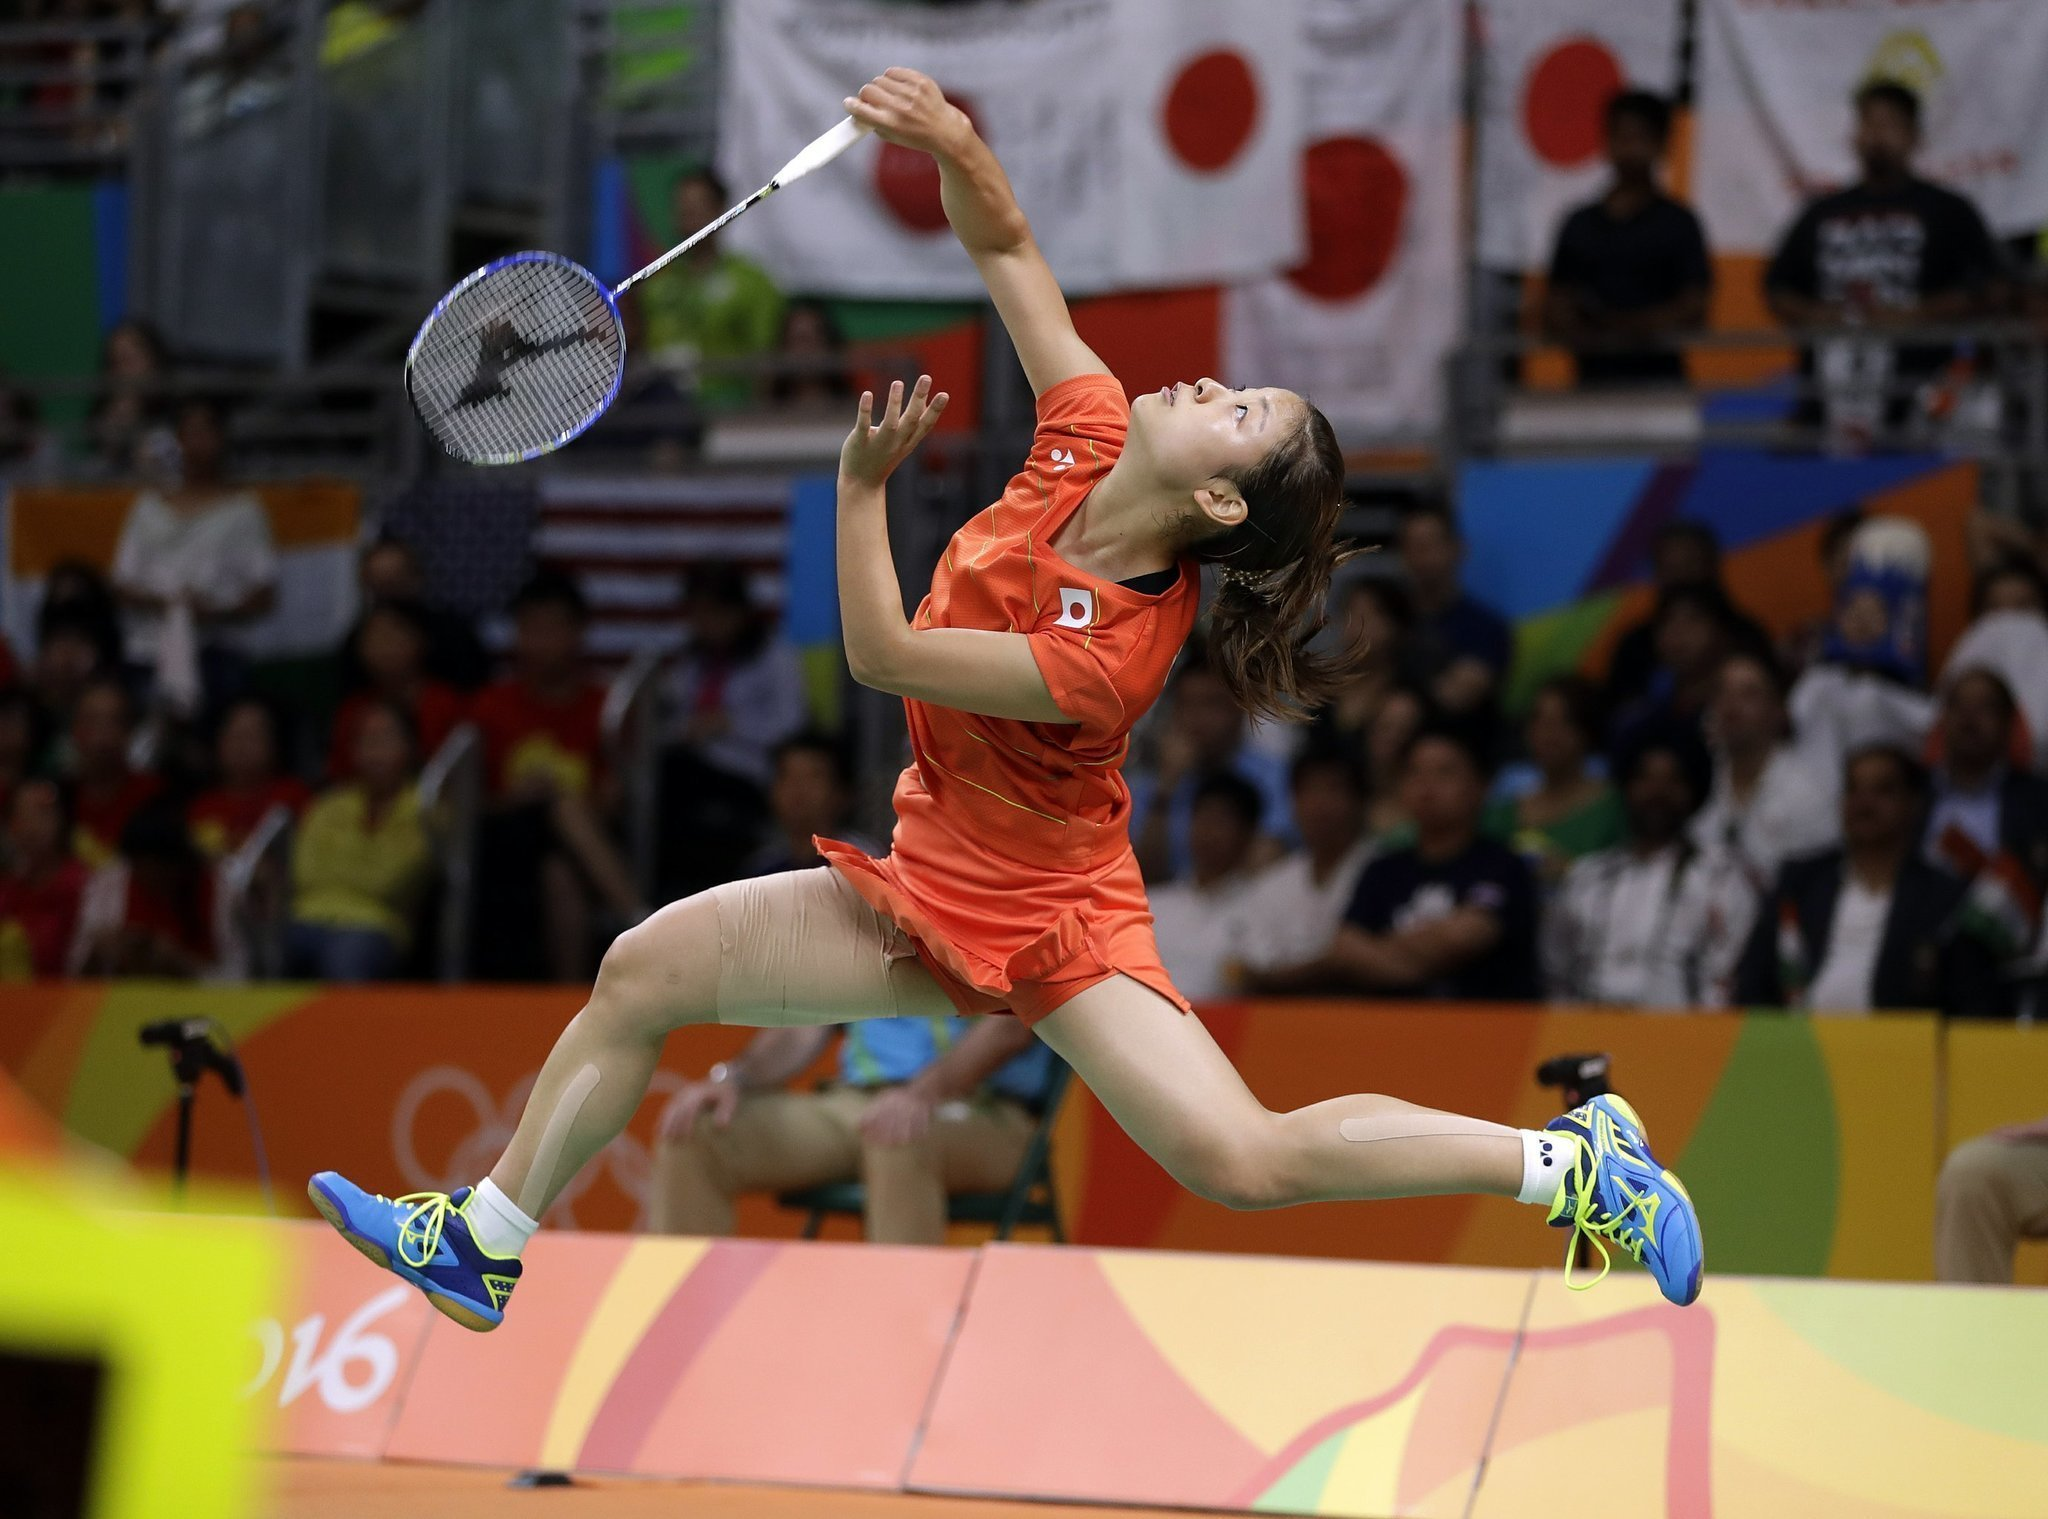 us badminton players work to reverse the